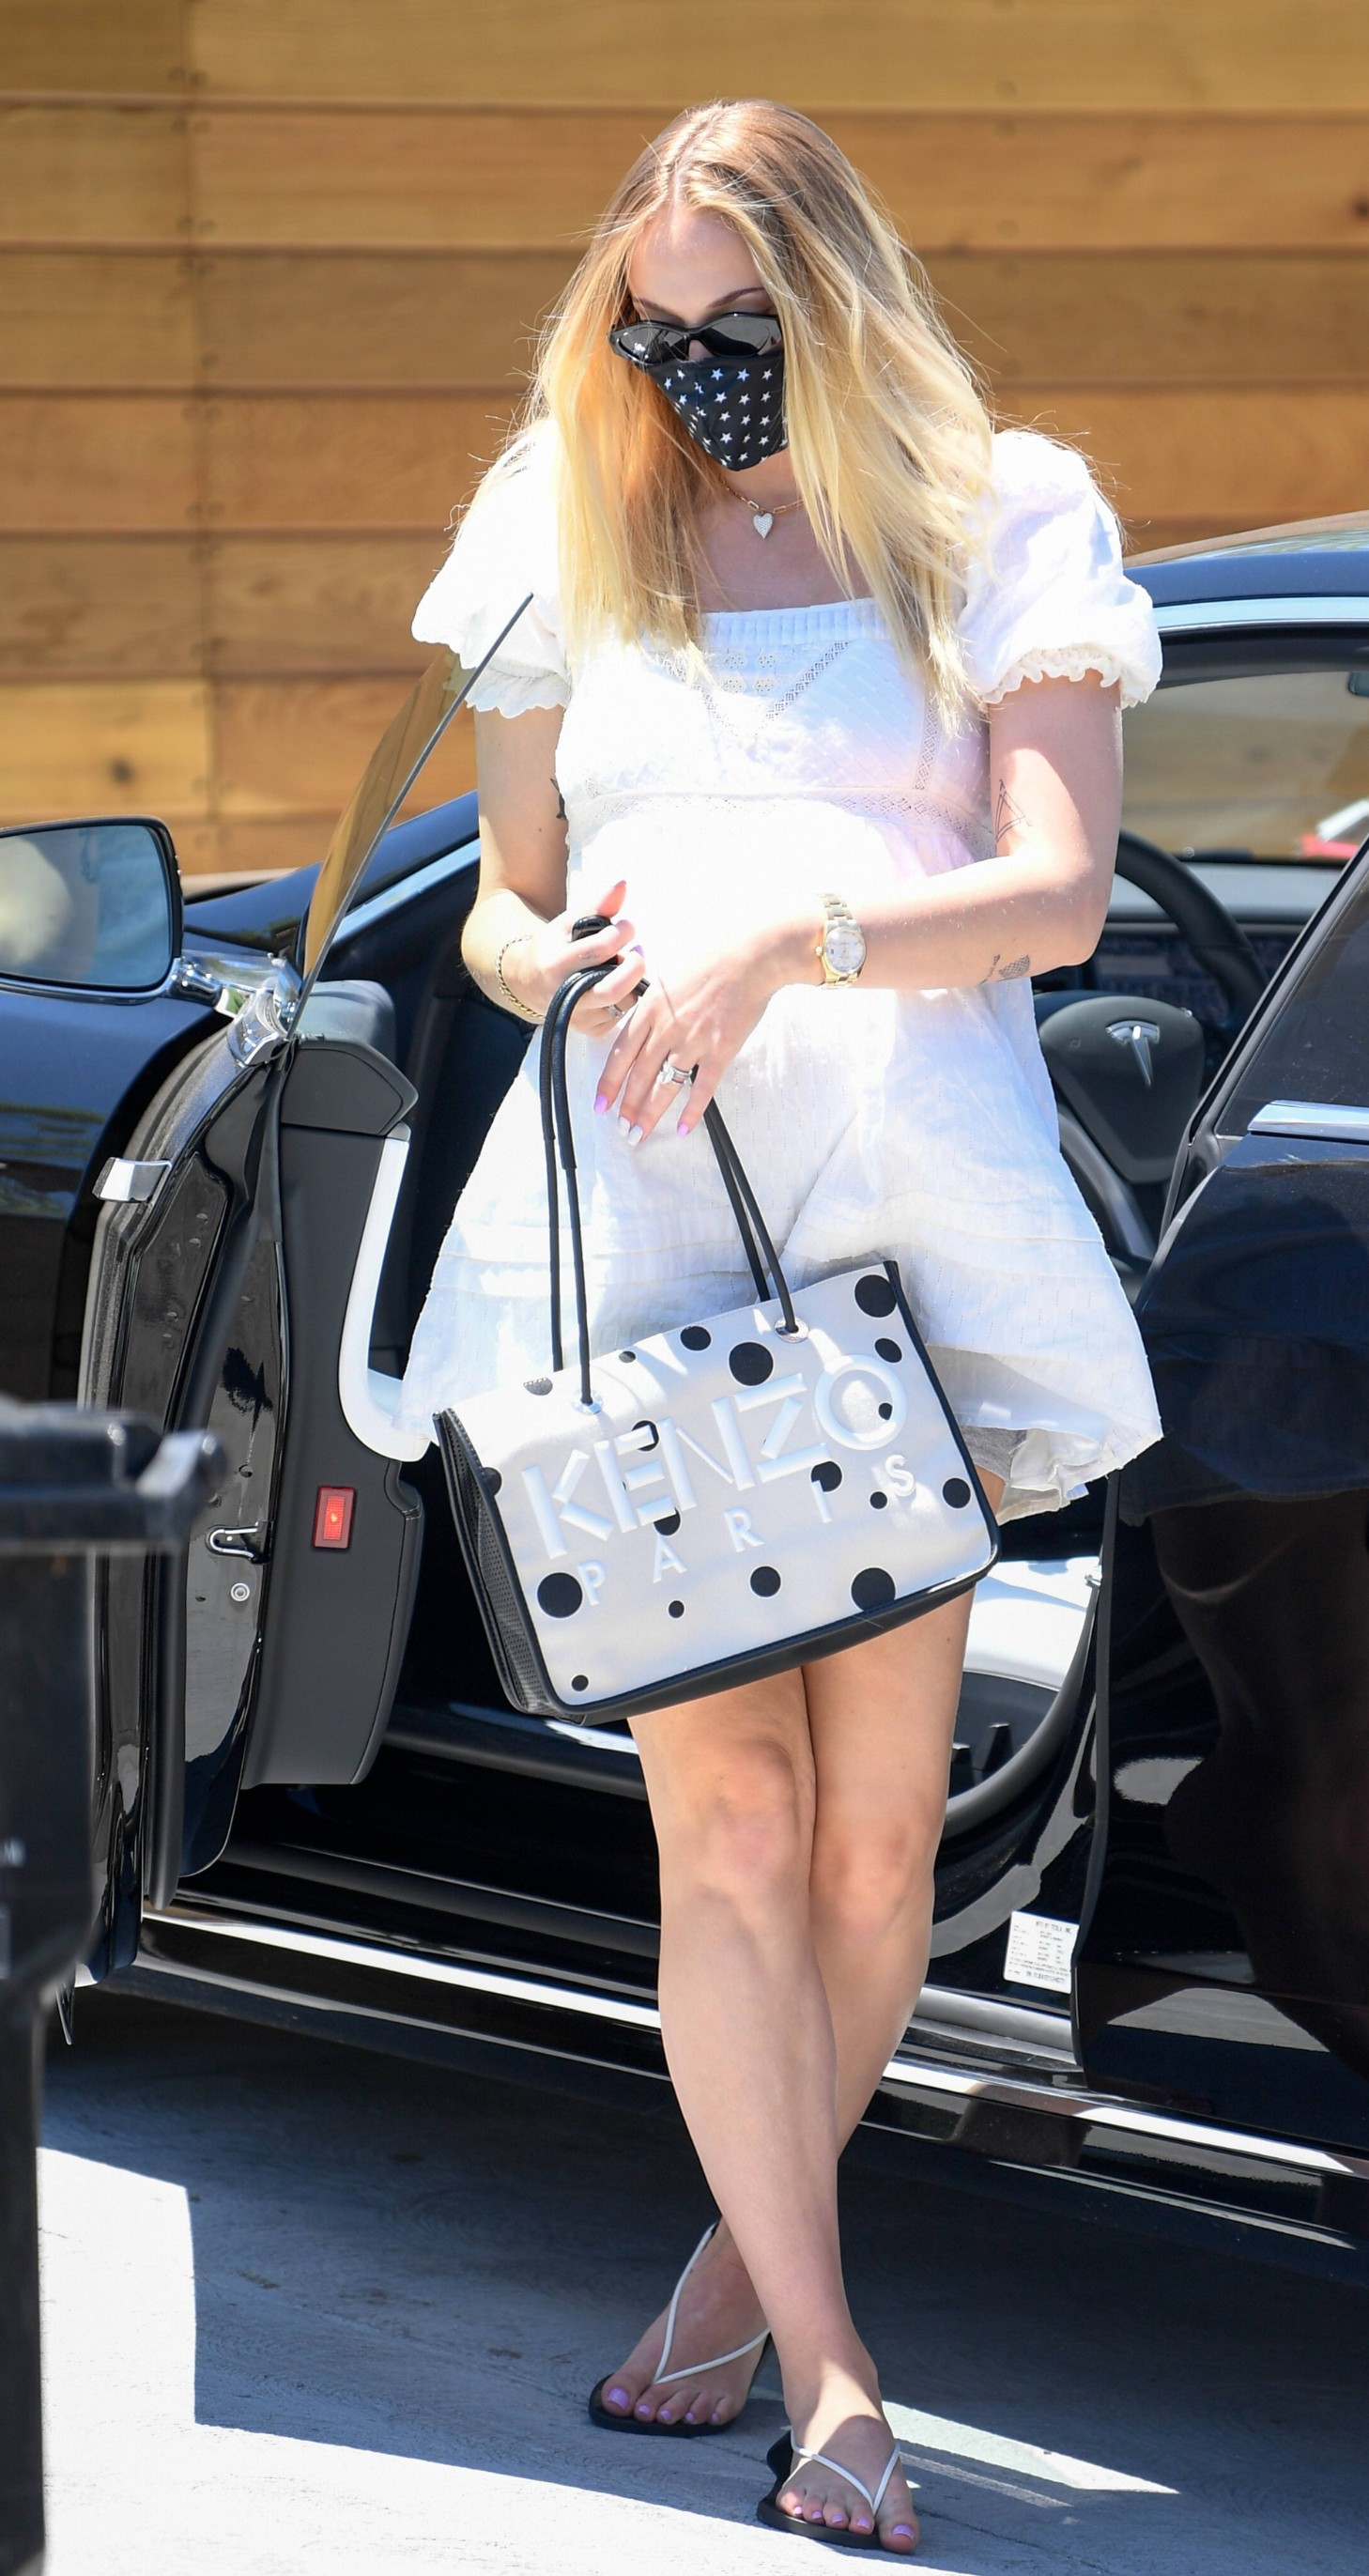 EXCLUSIVE: Joe Jonas and Sophie Turner meet up with friends for lunch at Lodge Bread Company. Before lunch they spent an hour and a half at Nick and Priyanka's new home. 12 Jul 2020,Image: 542453561, License: Rights-managed, Restrictions: World Rights, Model Release: no, Credit line: MEGA / The Mega Agency / Profimedia